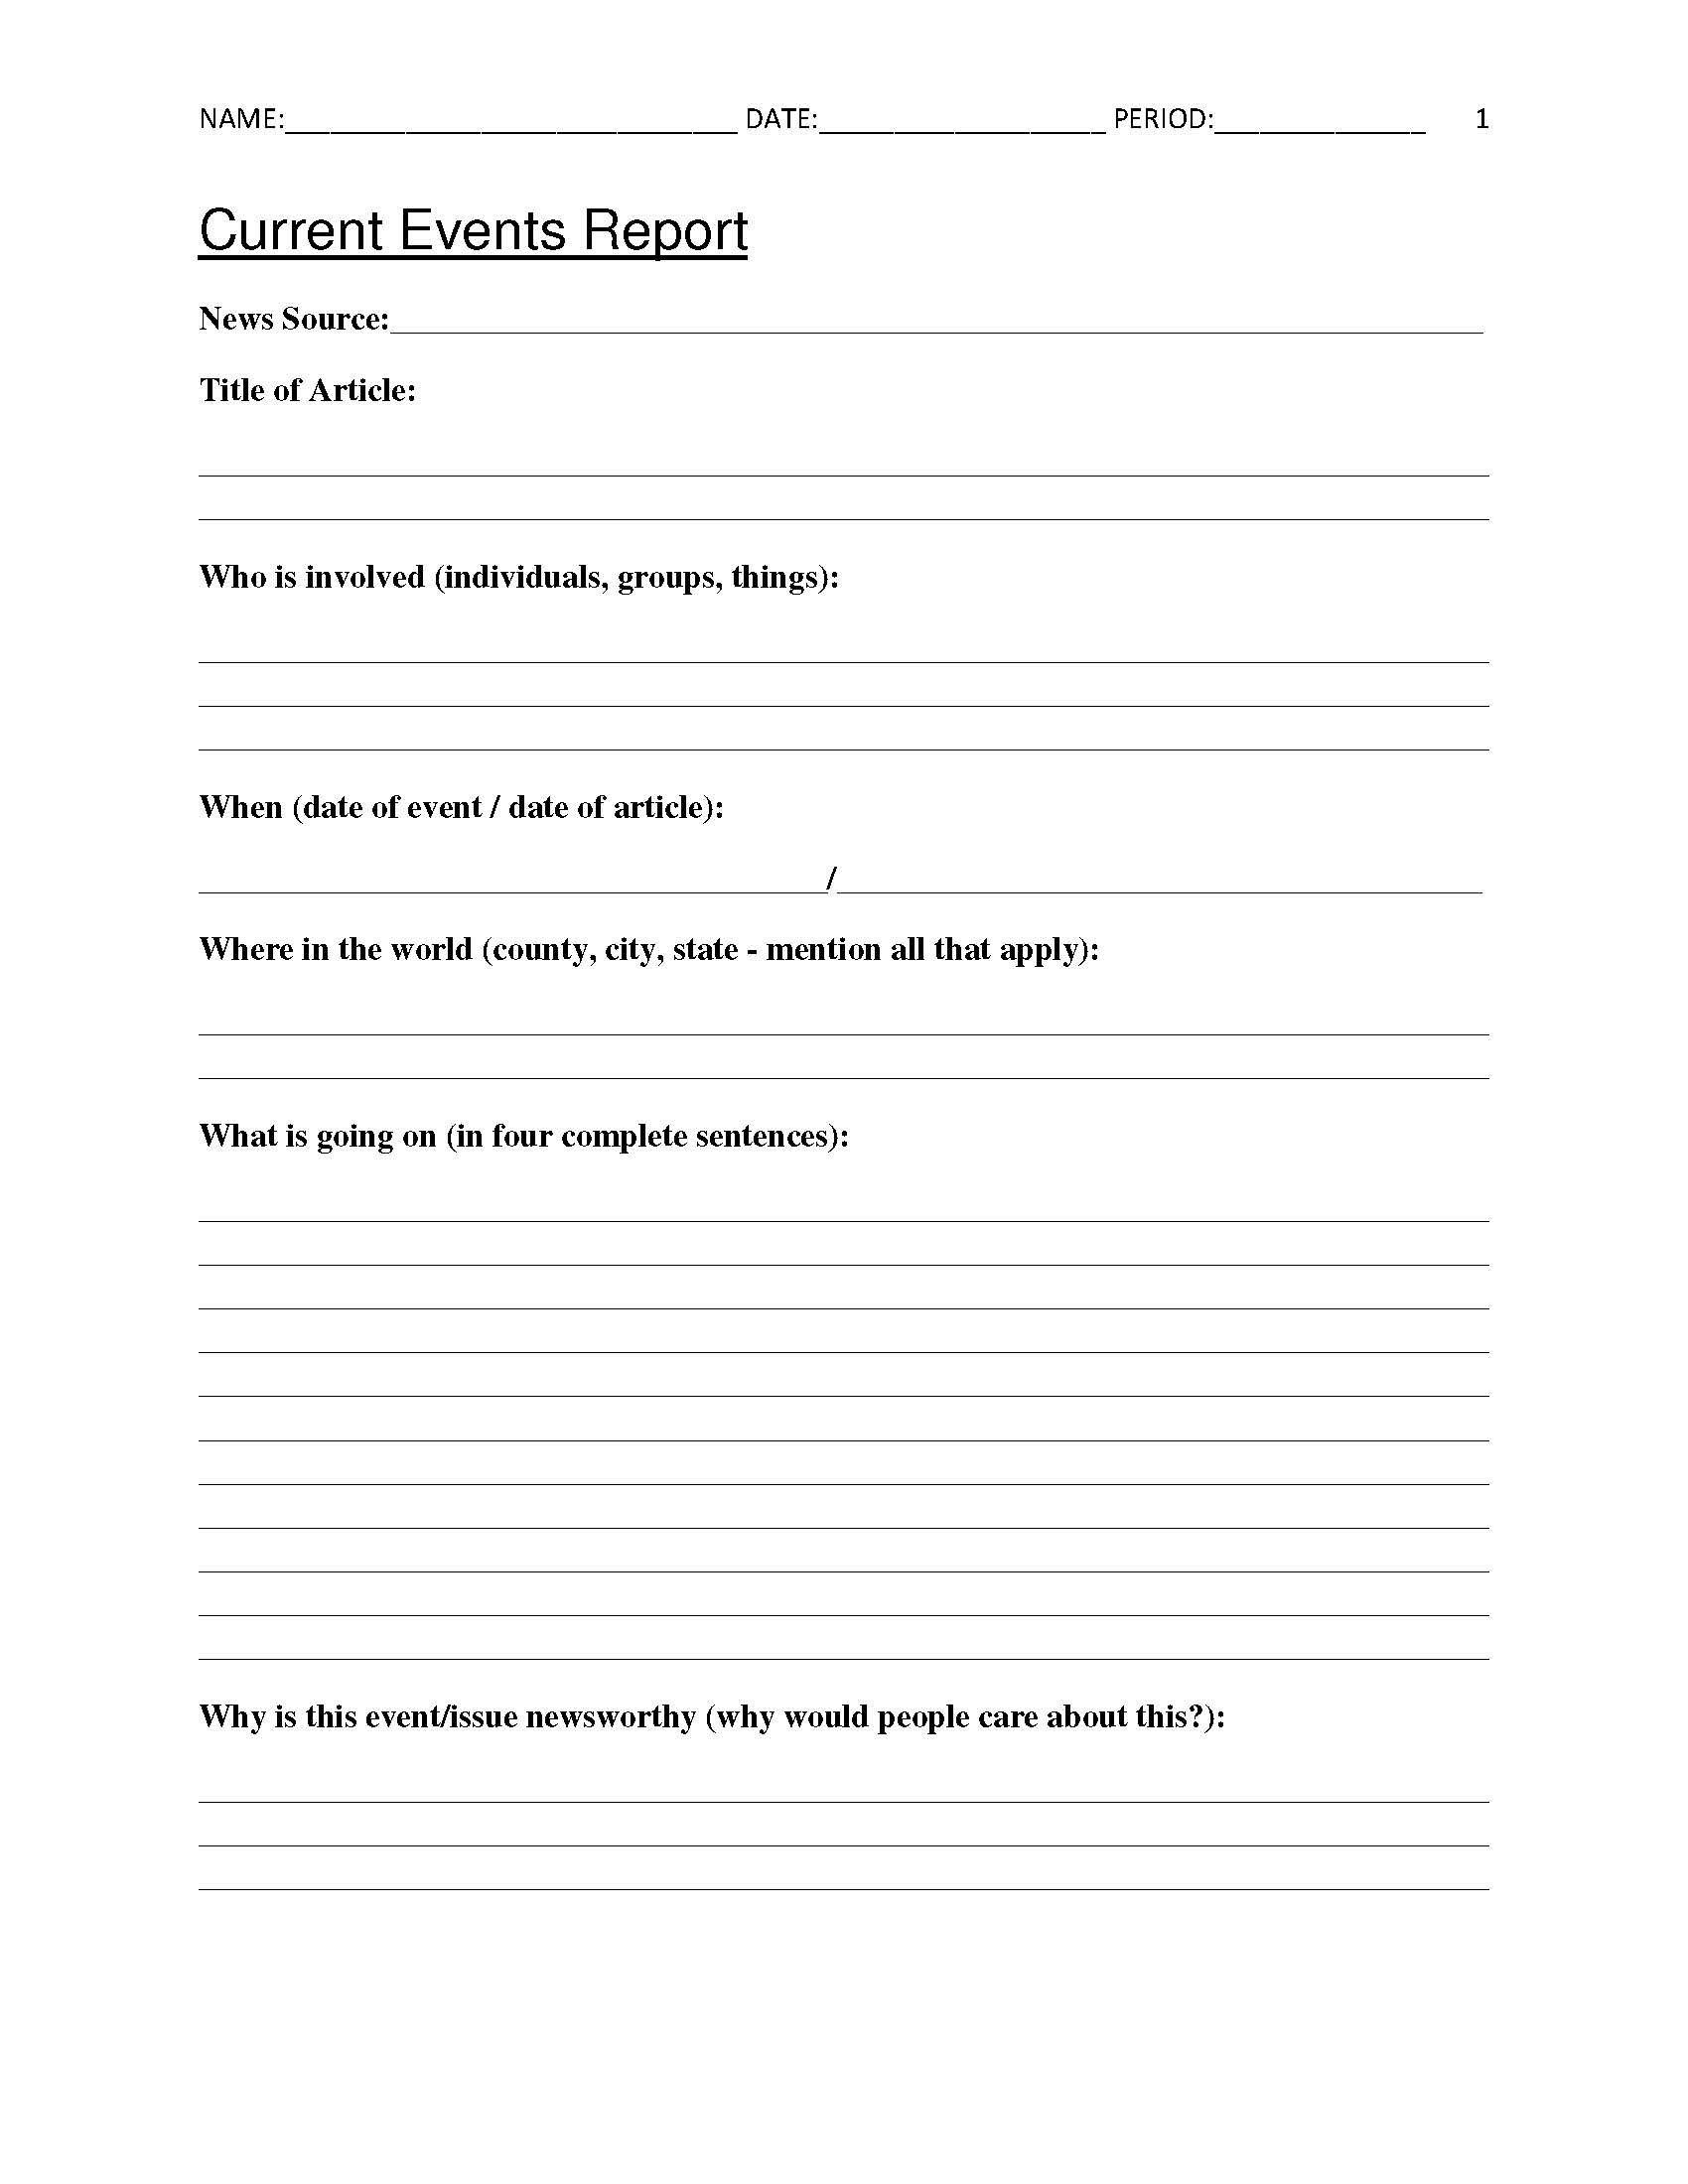 Summary Worksheets Middle School Free Current events Report Worksheet for Classroom Teachers